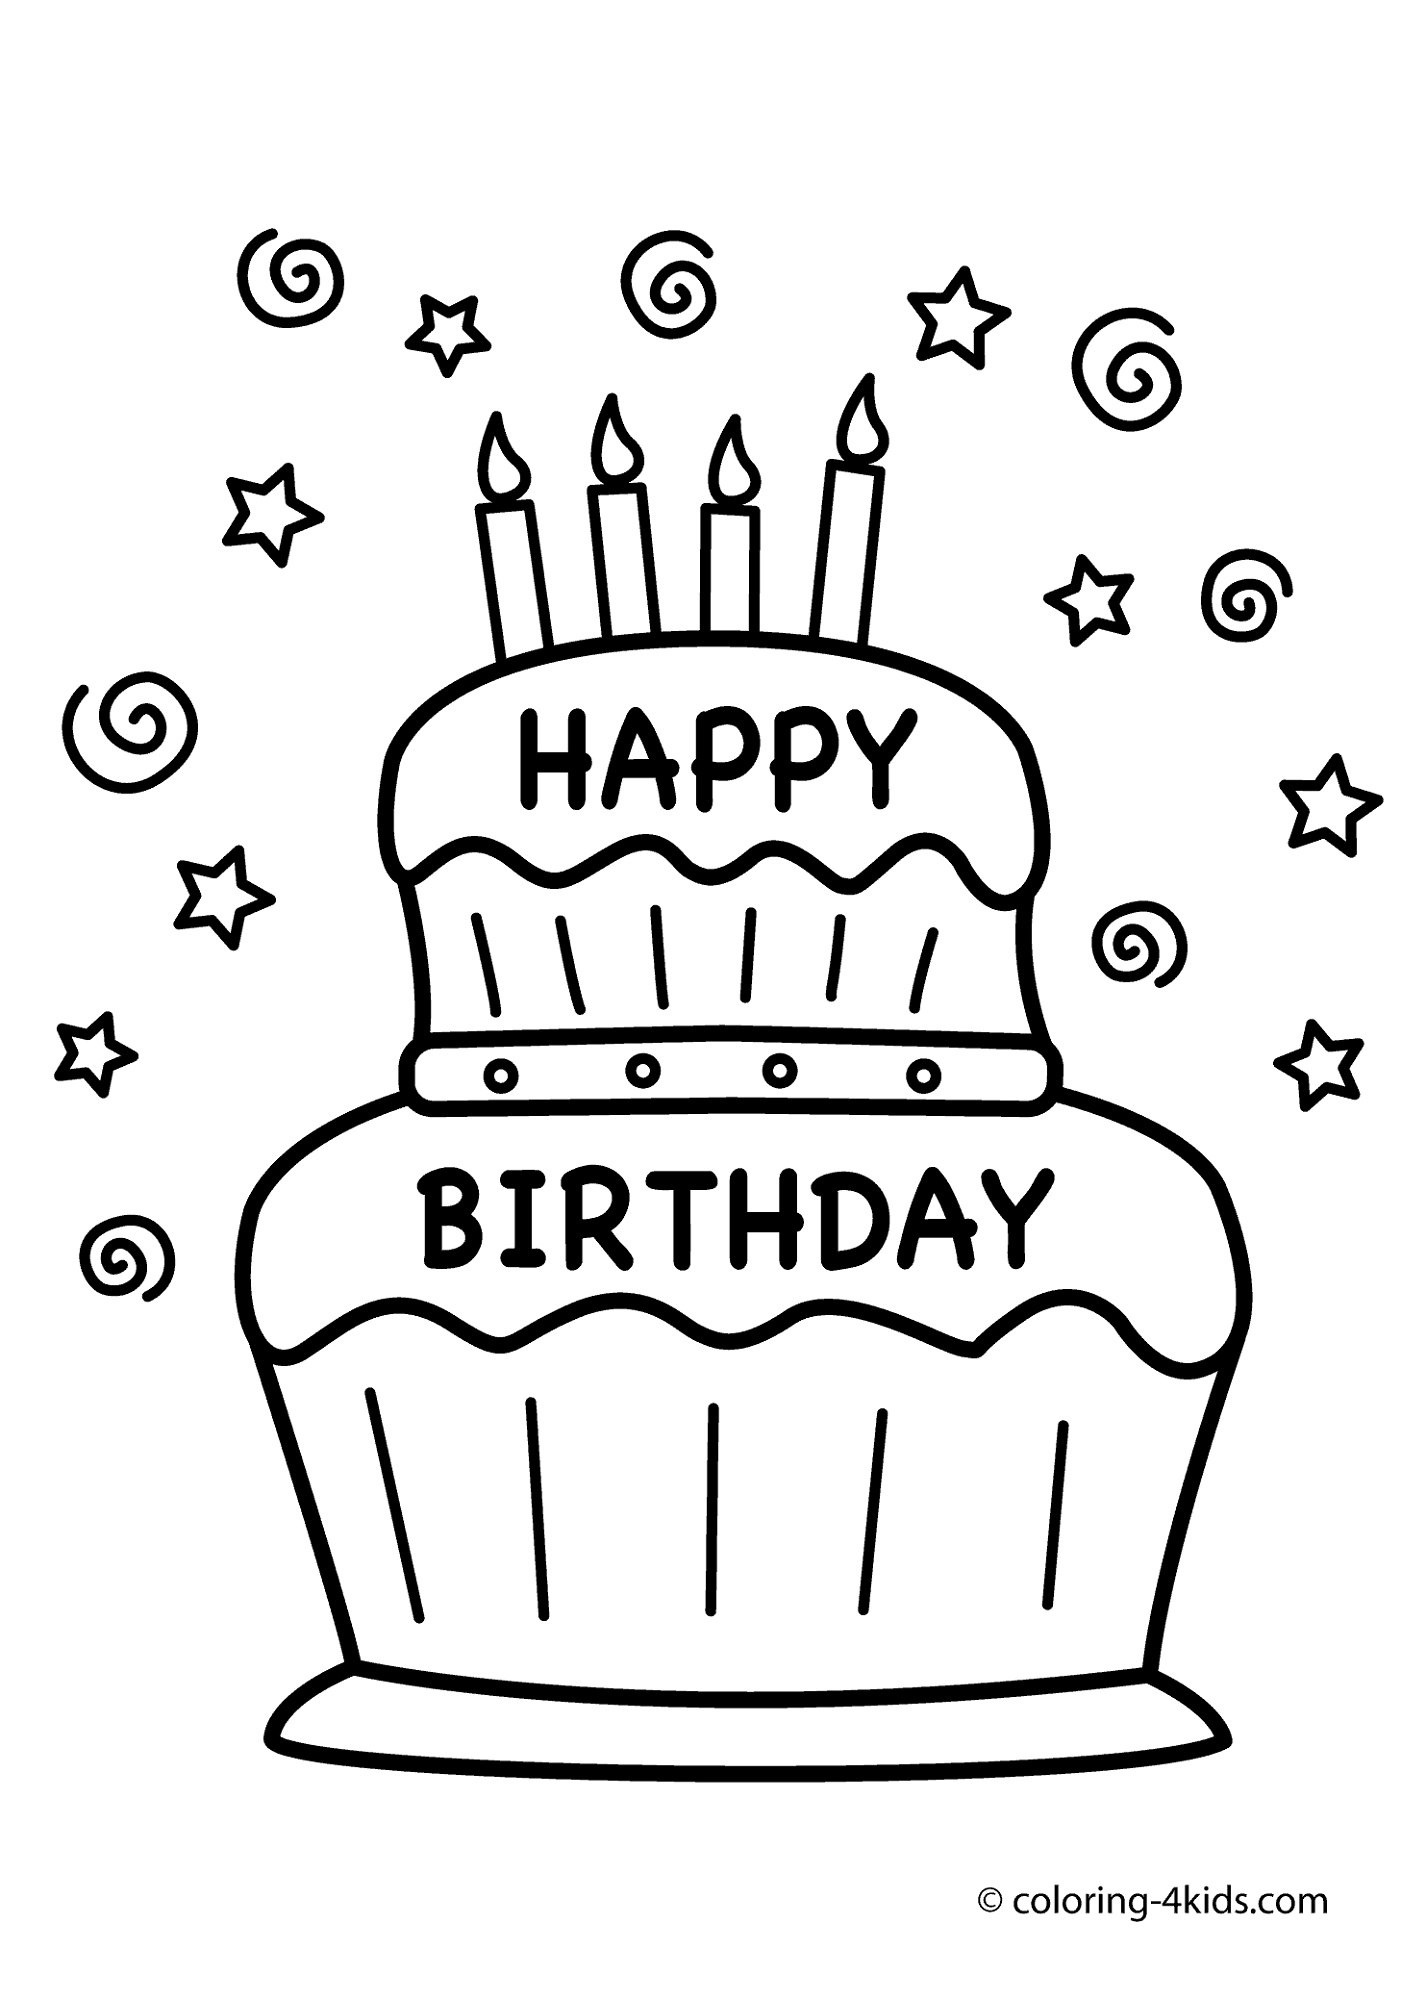 Birthday Cake Coloring Page To Print